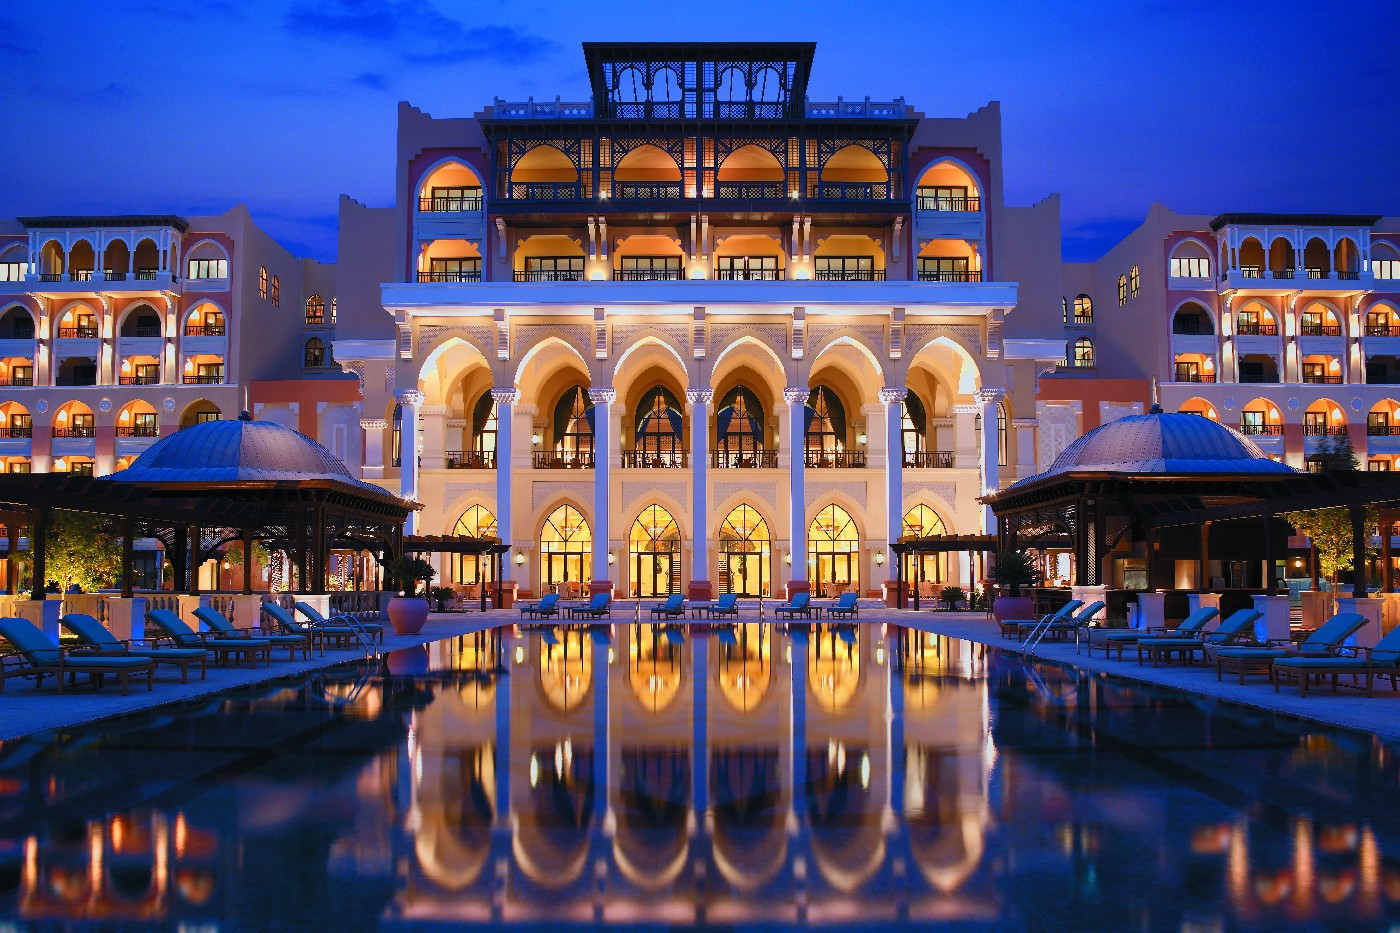 stackliving-luxurious-hotels-01-emirates-palace-abu-dhabi-03-hotel-at-night